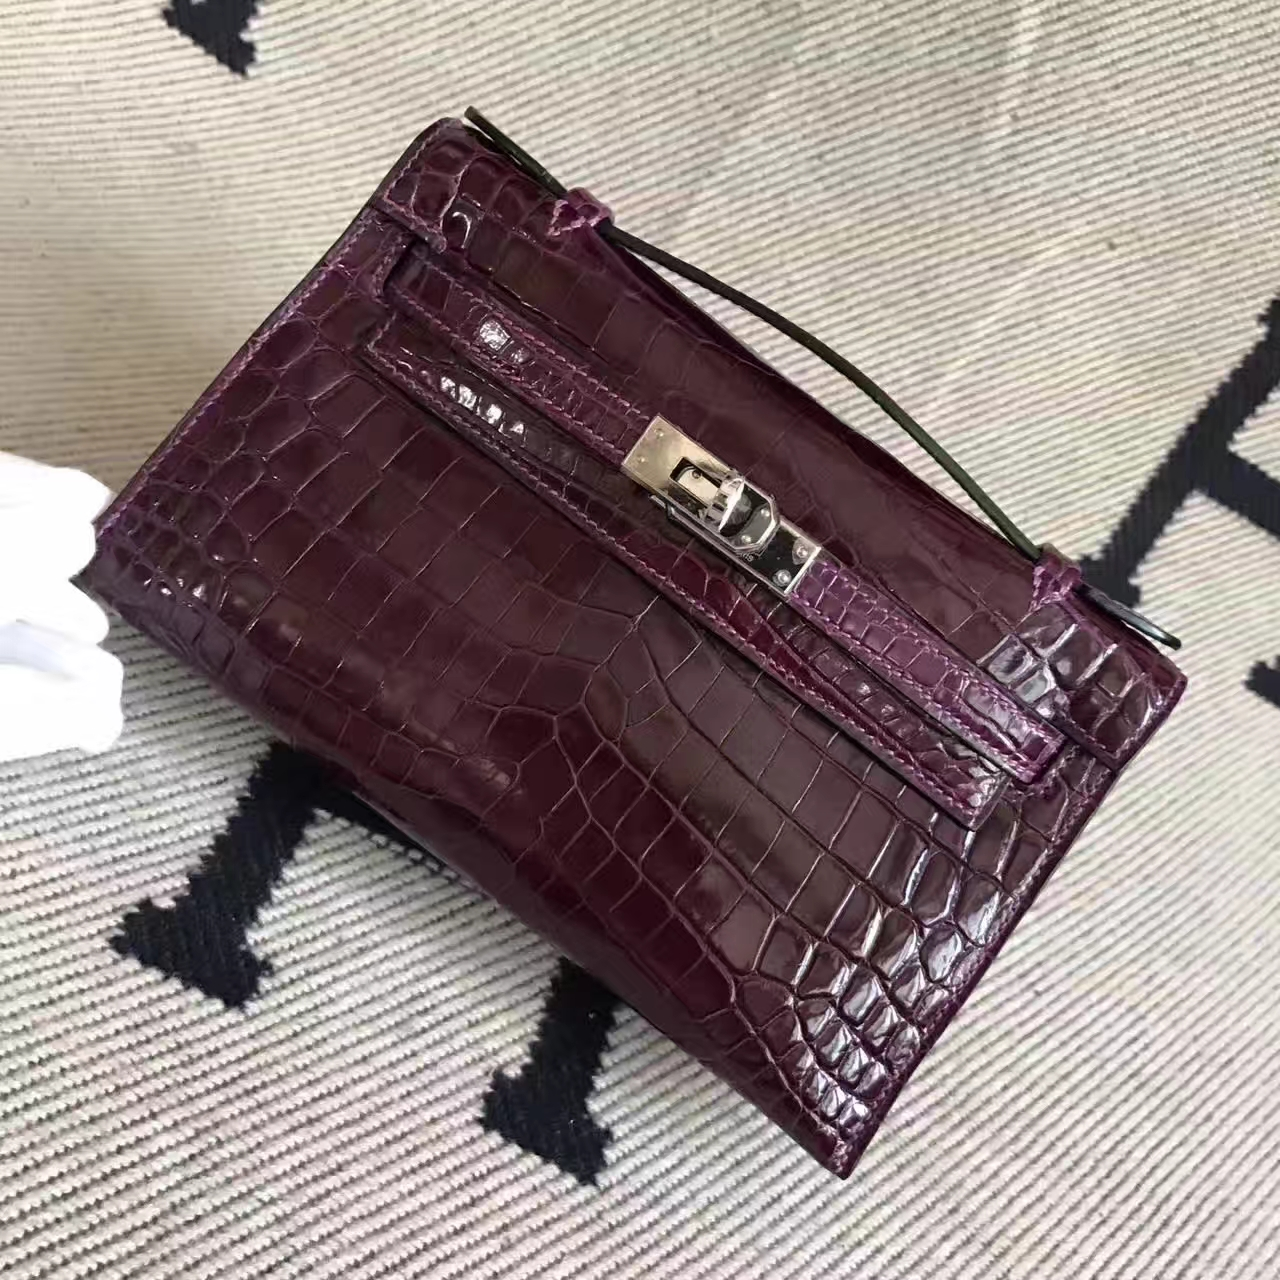 Discount Hermes Minikelly Clutch Bag in Fuchsia Crocodile Shiny Leathe